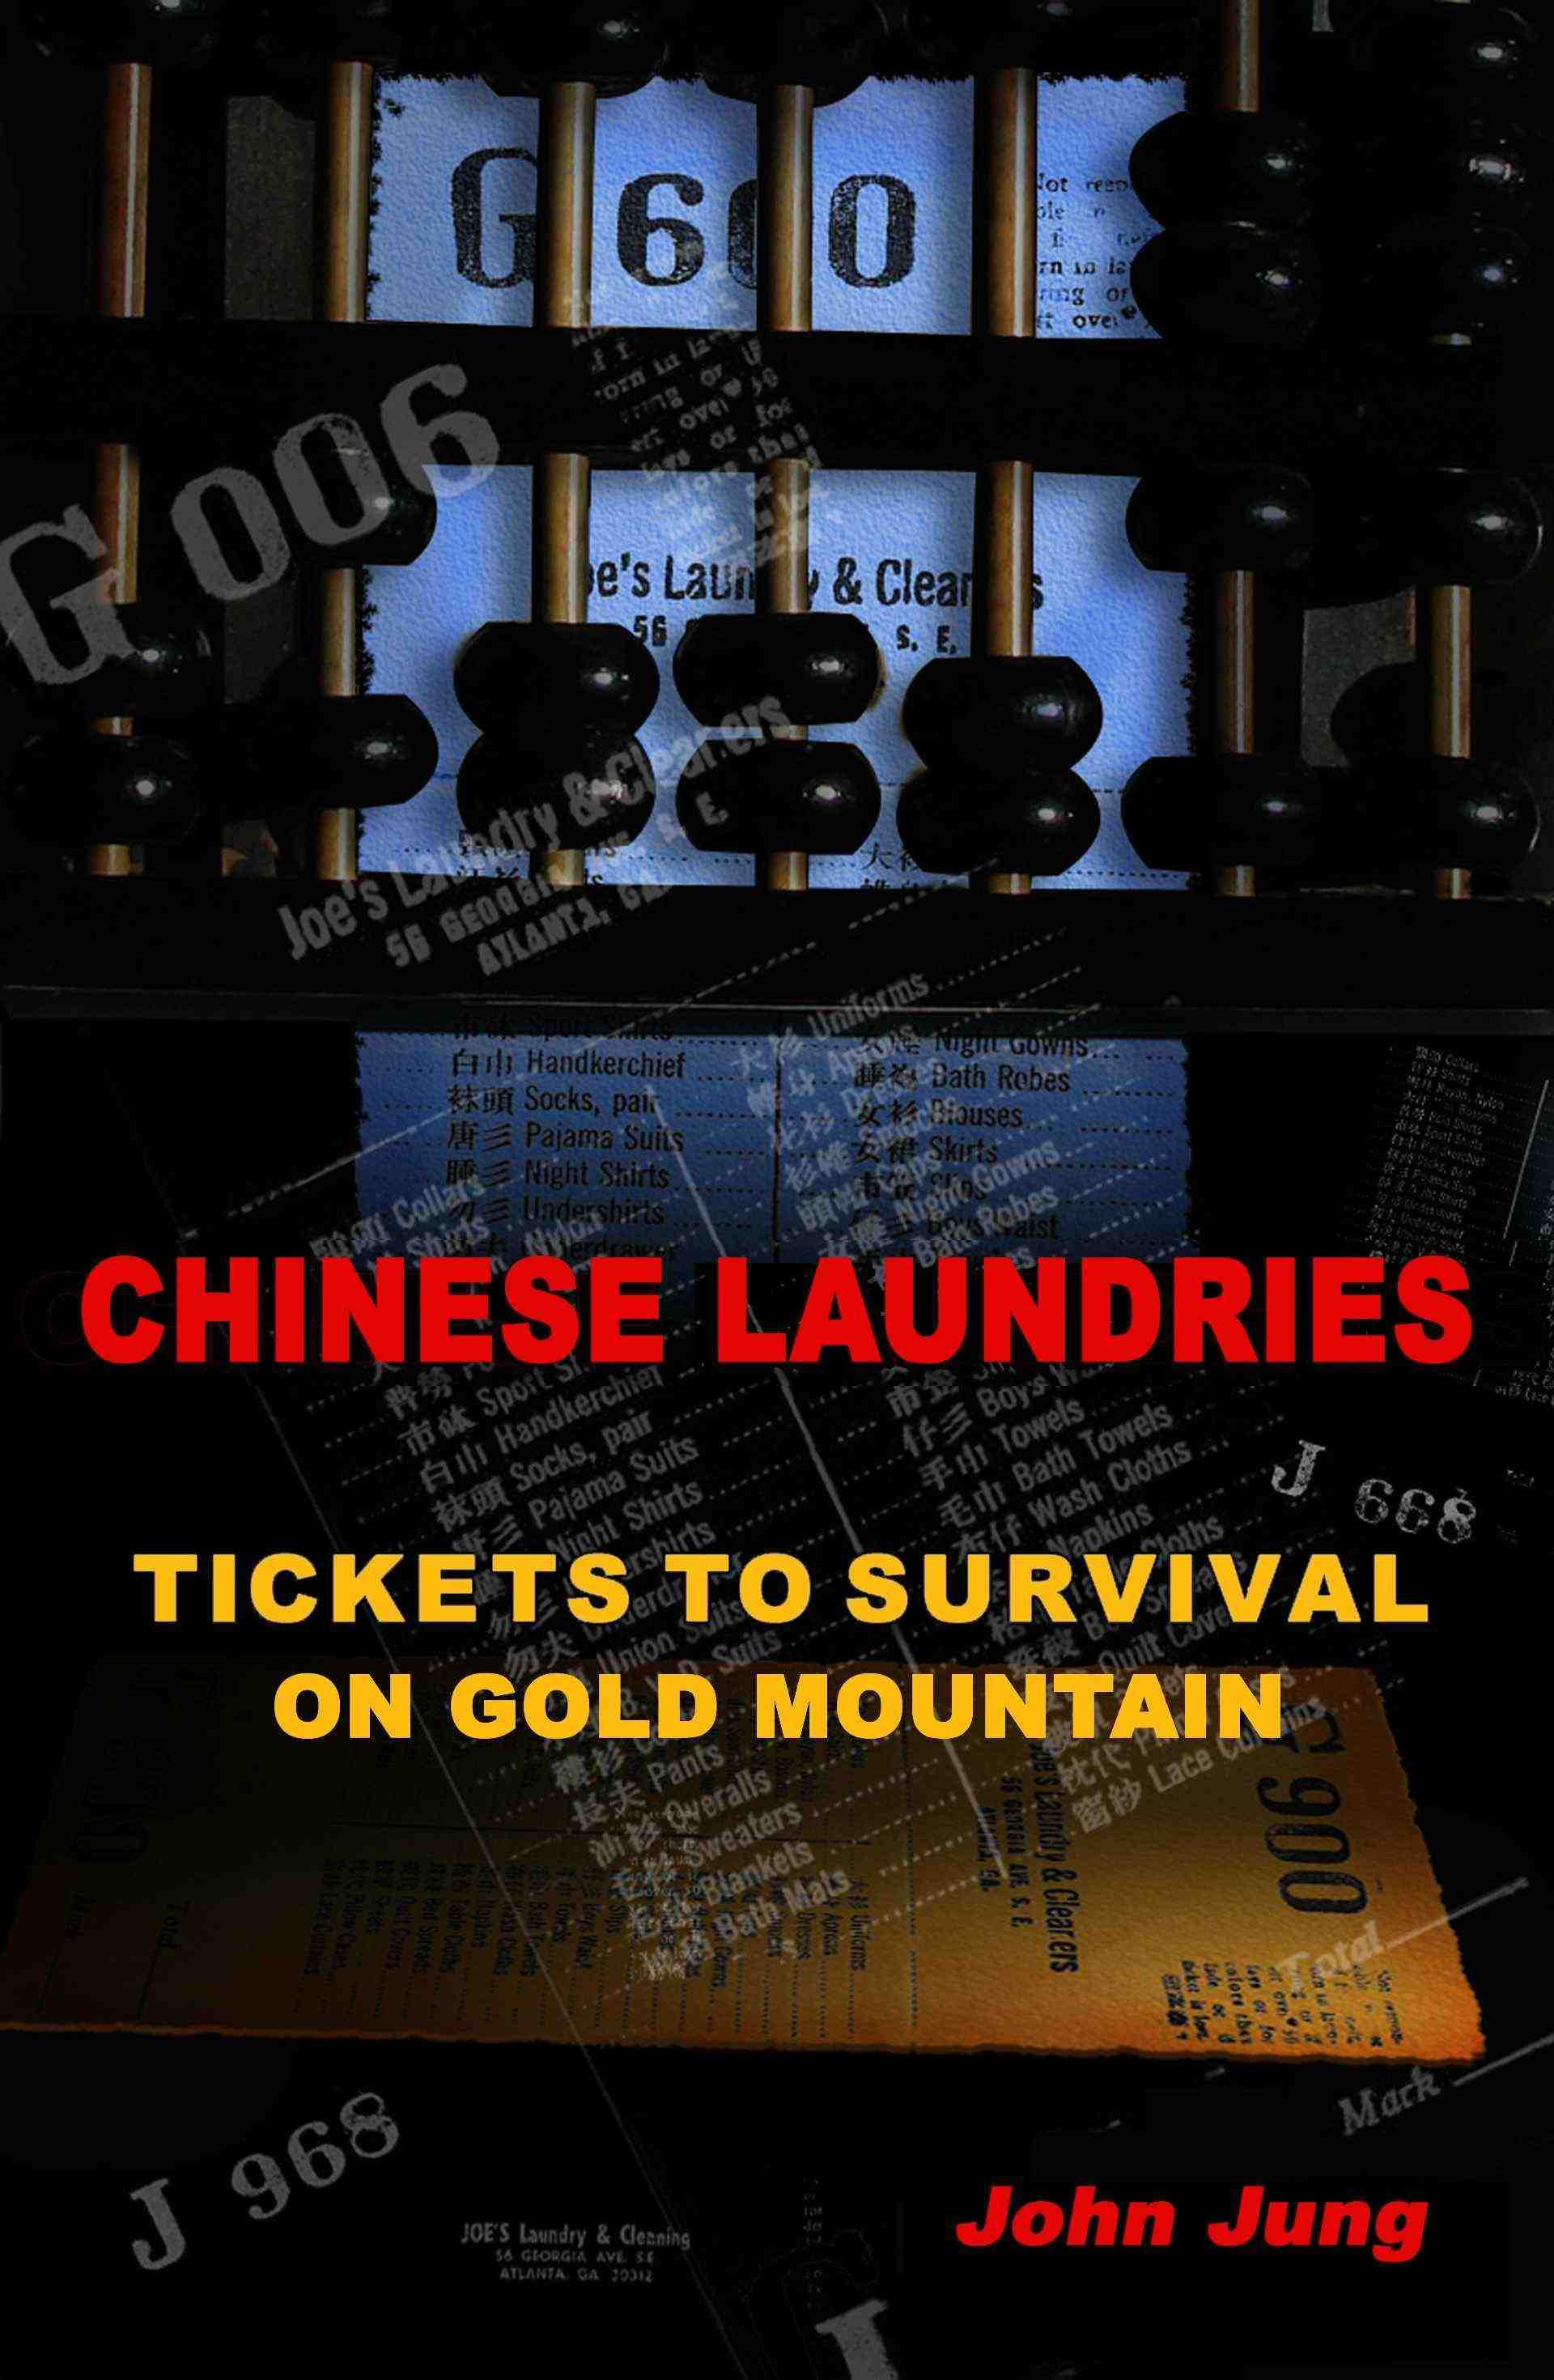 Chinese Laundries: Tickets to Survival on Gold Mountain